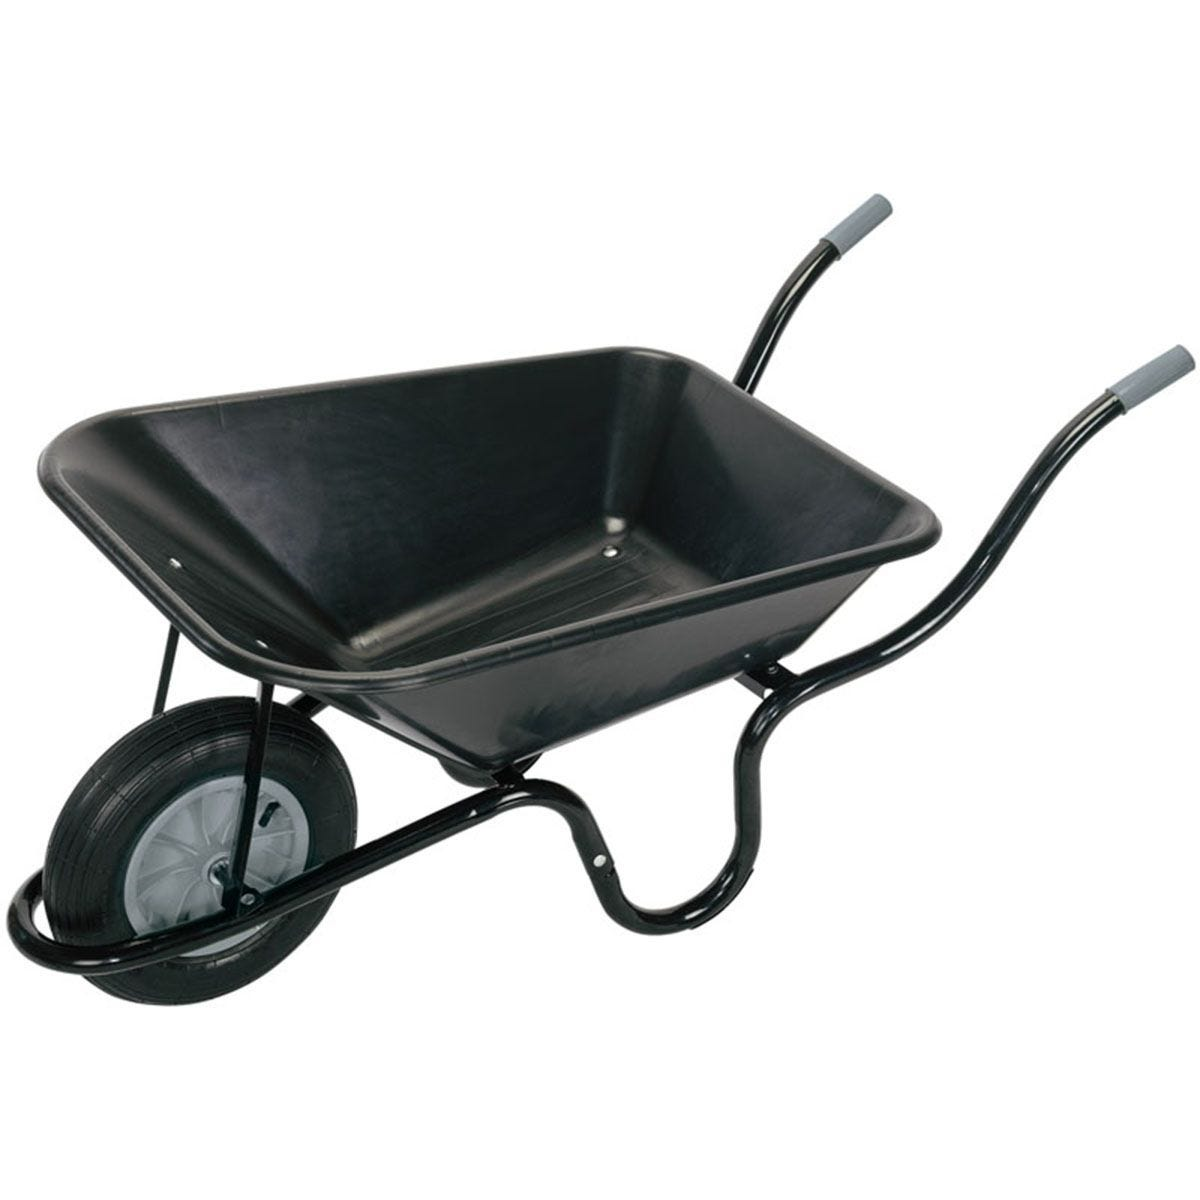 Draper Plastic Tray Wheelbarrow (85L) - Black